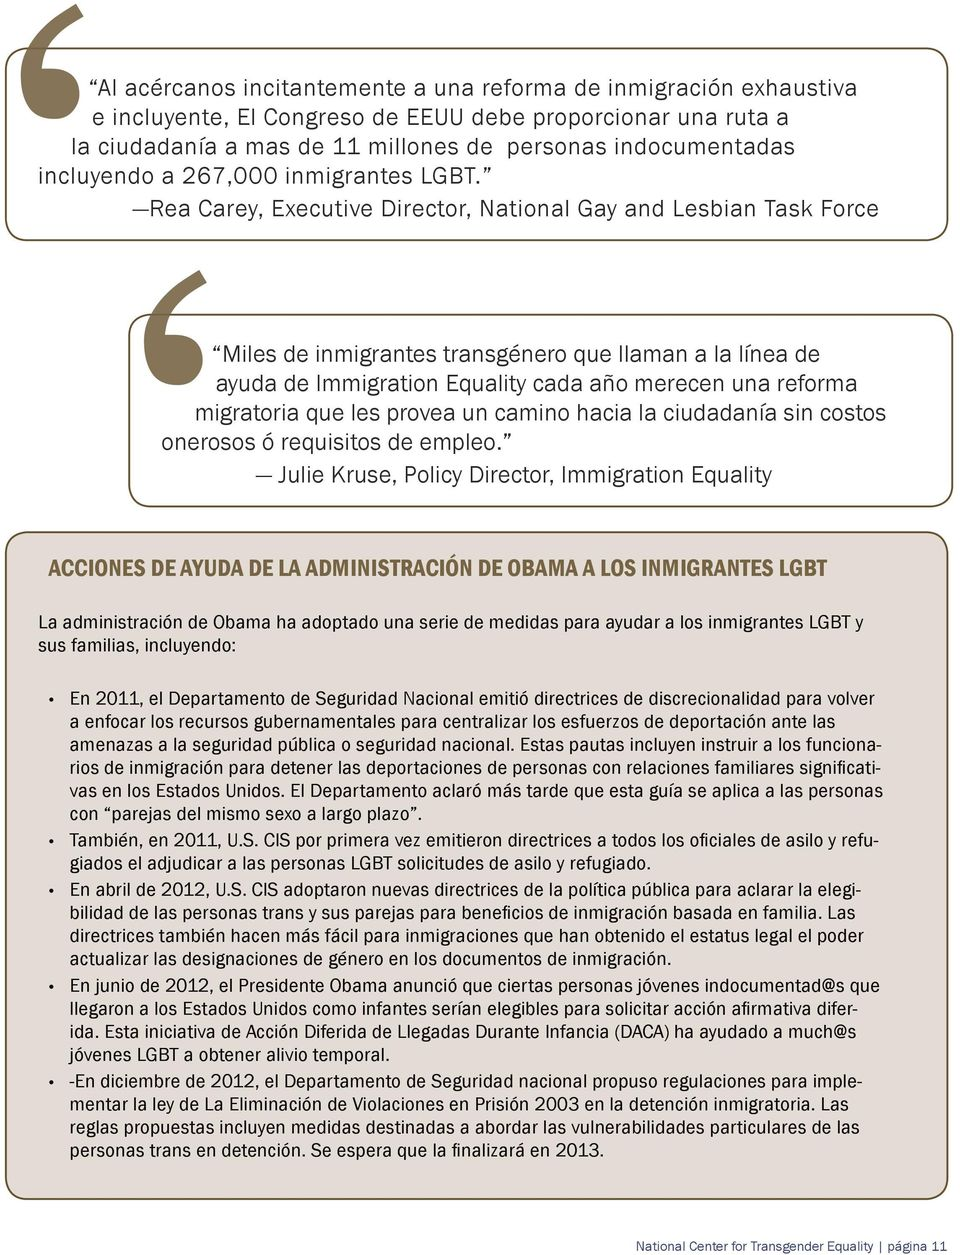 Rea Carey, Executive Director, National Gay and Lesbian Task Force Miles de inmigrantes transgénero que llaman a la línea de ayuda de Immigration Equality cada año merecen una reforma migratoria que